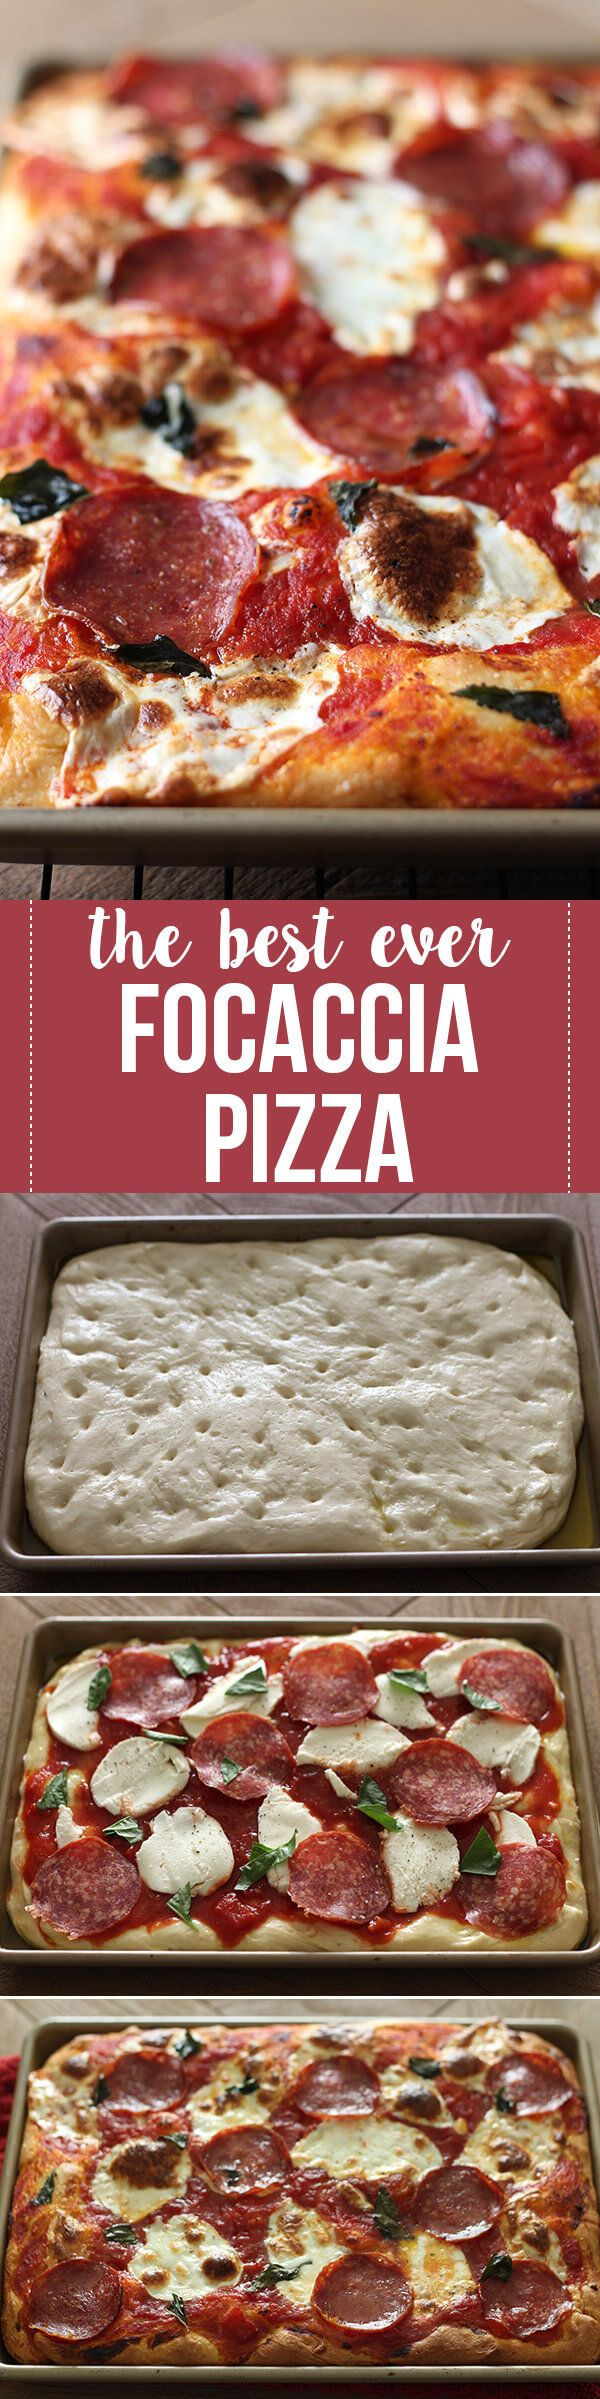 Best Ever Focaccia Pizza - Handle the Heat